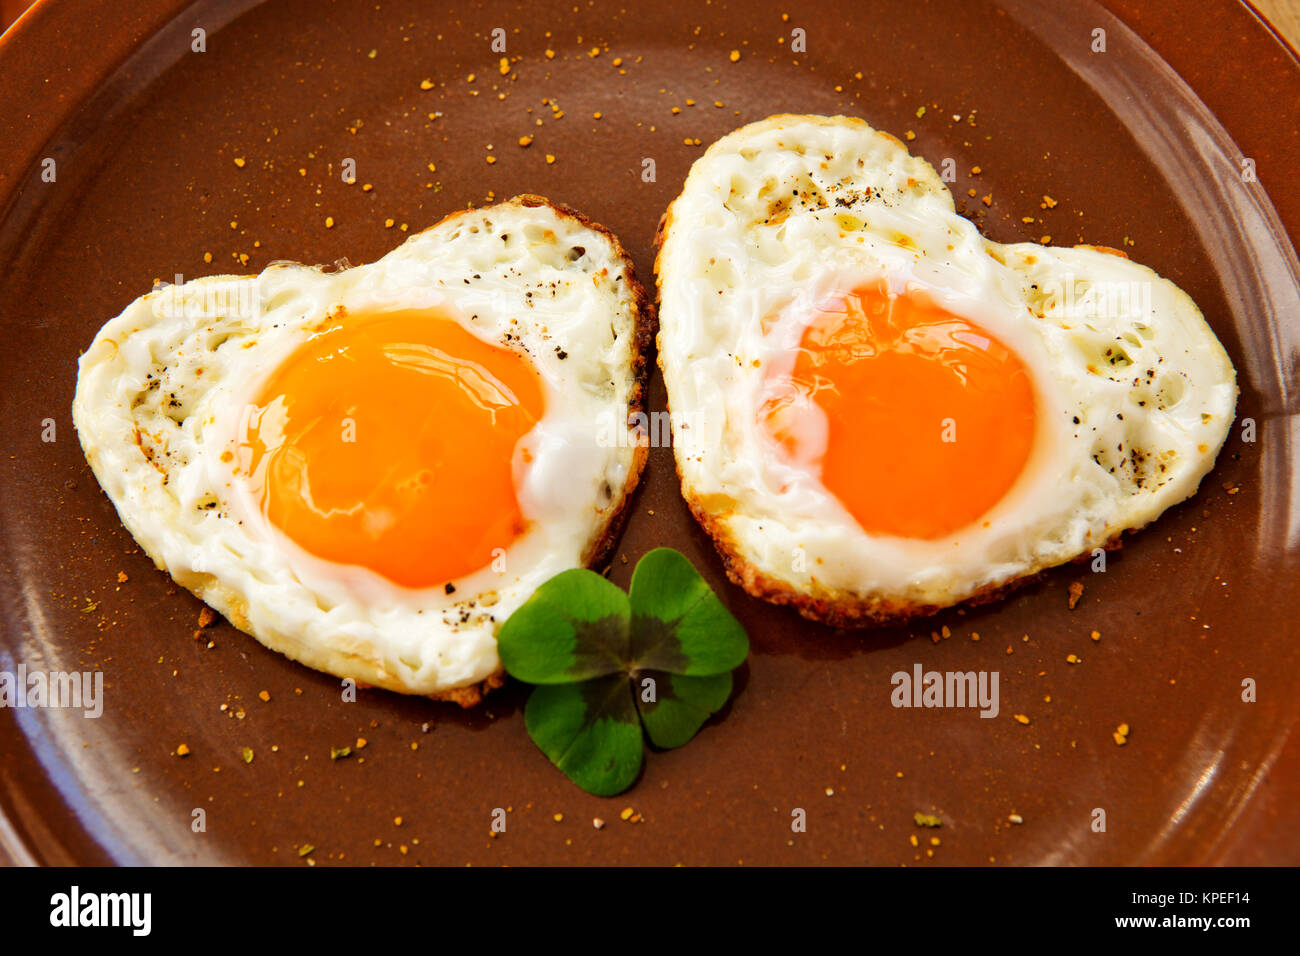 Fried Egg On A Plate (Path) Royalty Free Stock Photography ...  |Fried Eggs On A Plate